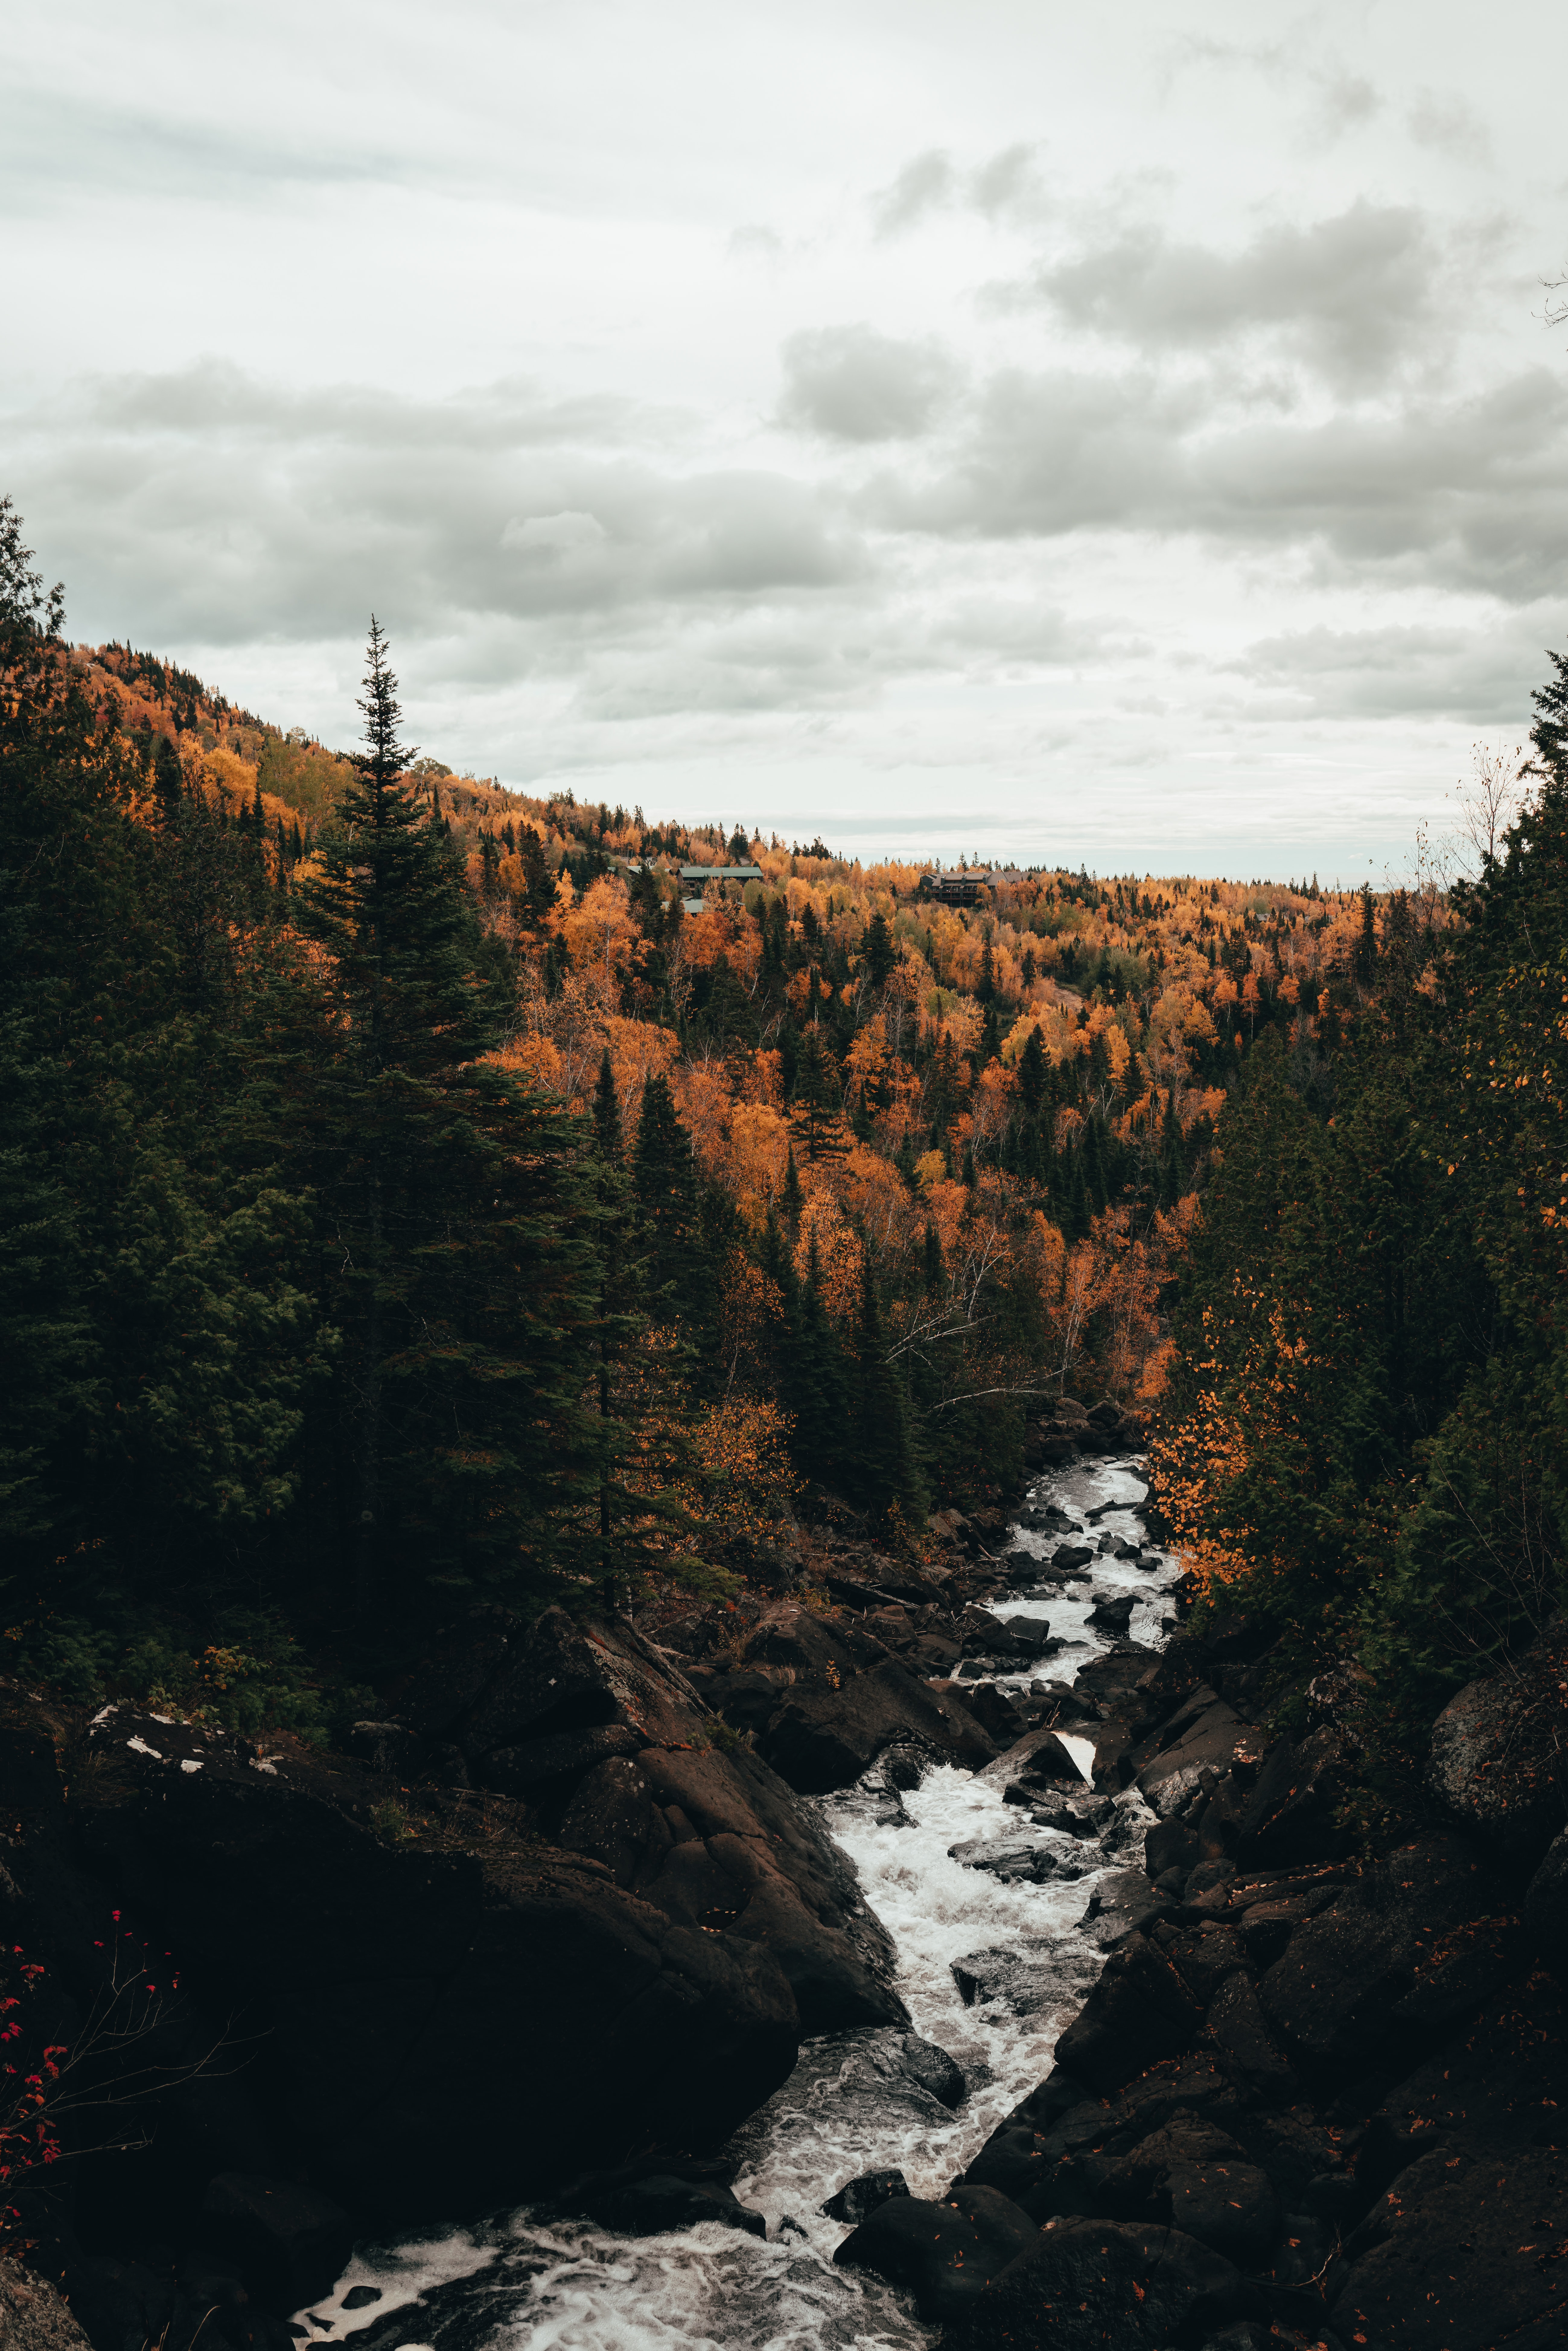 135236 download wallpaper Nature, Rivers, Trees, Autumn, Stones, Flow, Stream screensavers and pictures for free